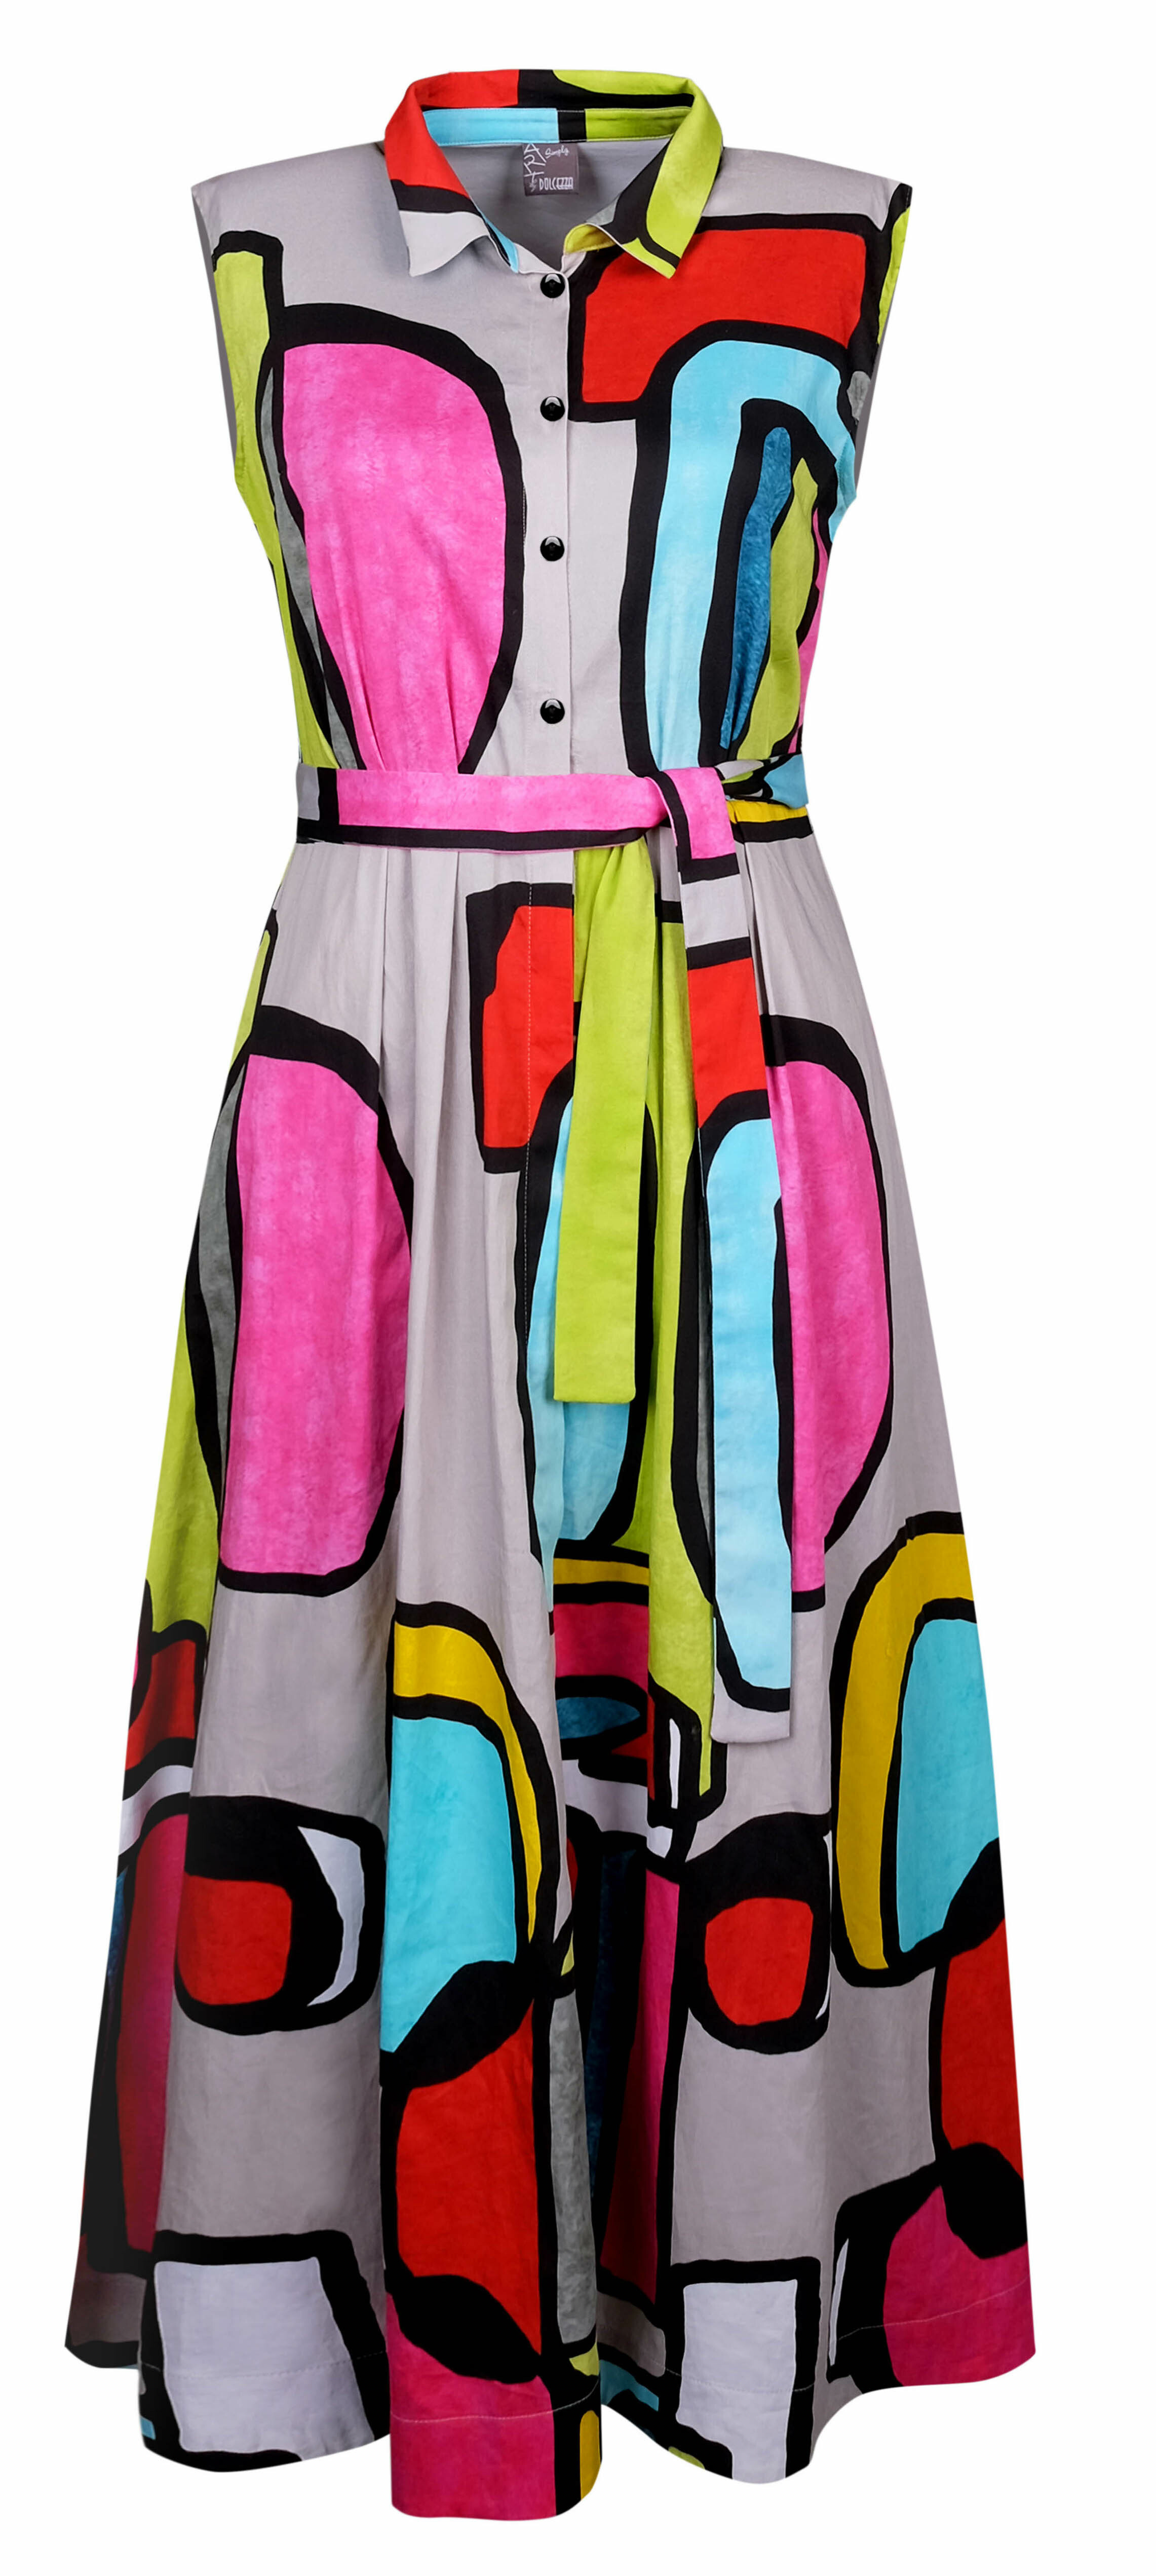 Simply Art Dolcezza: Mid Century Vibrant Romance Abstract Art Shirt Maxi Dress SOLD OUT